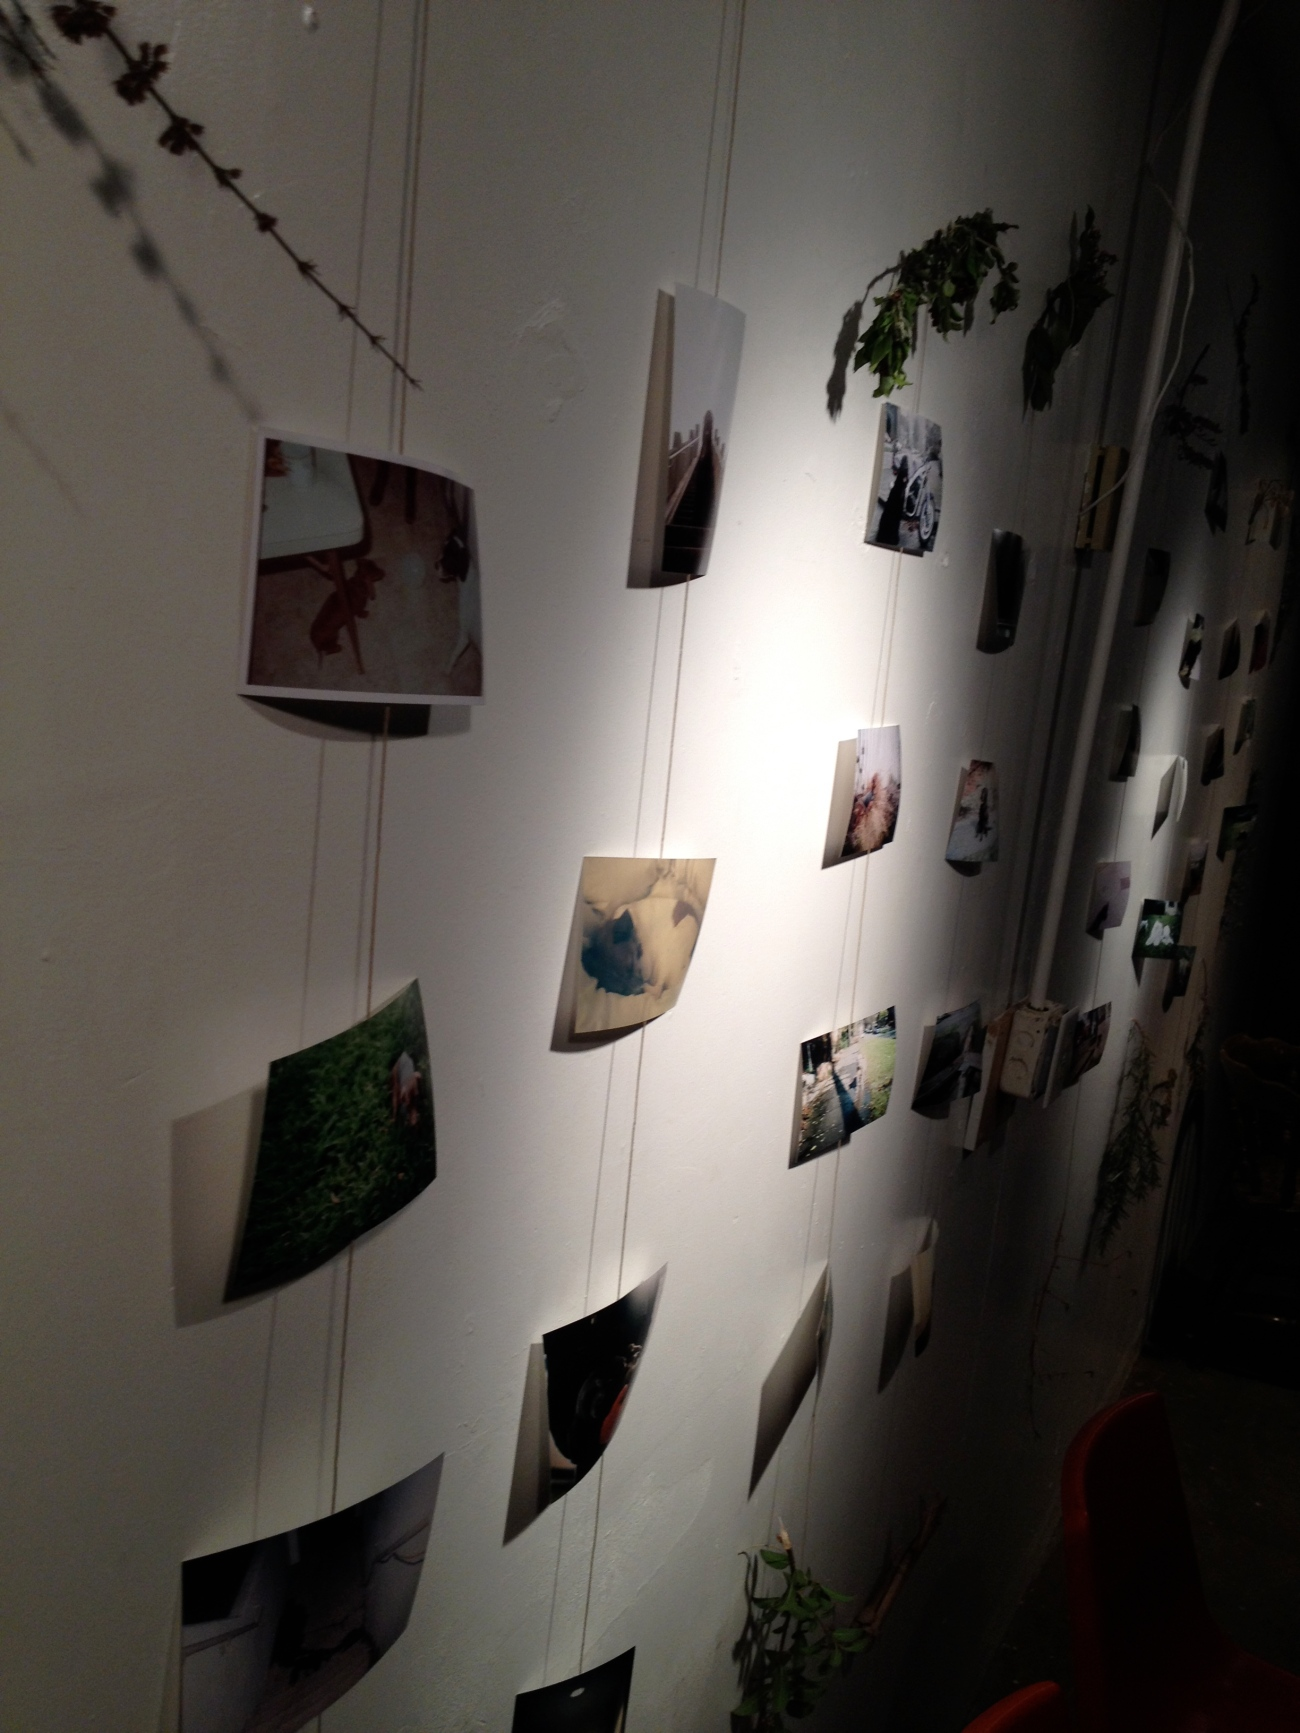 Dog pictures on string, dangled from dead branches...ahh.